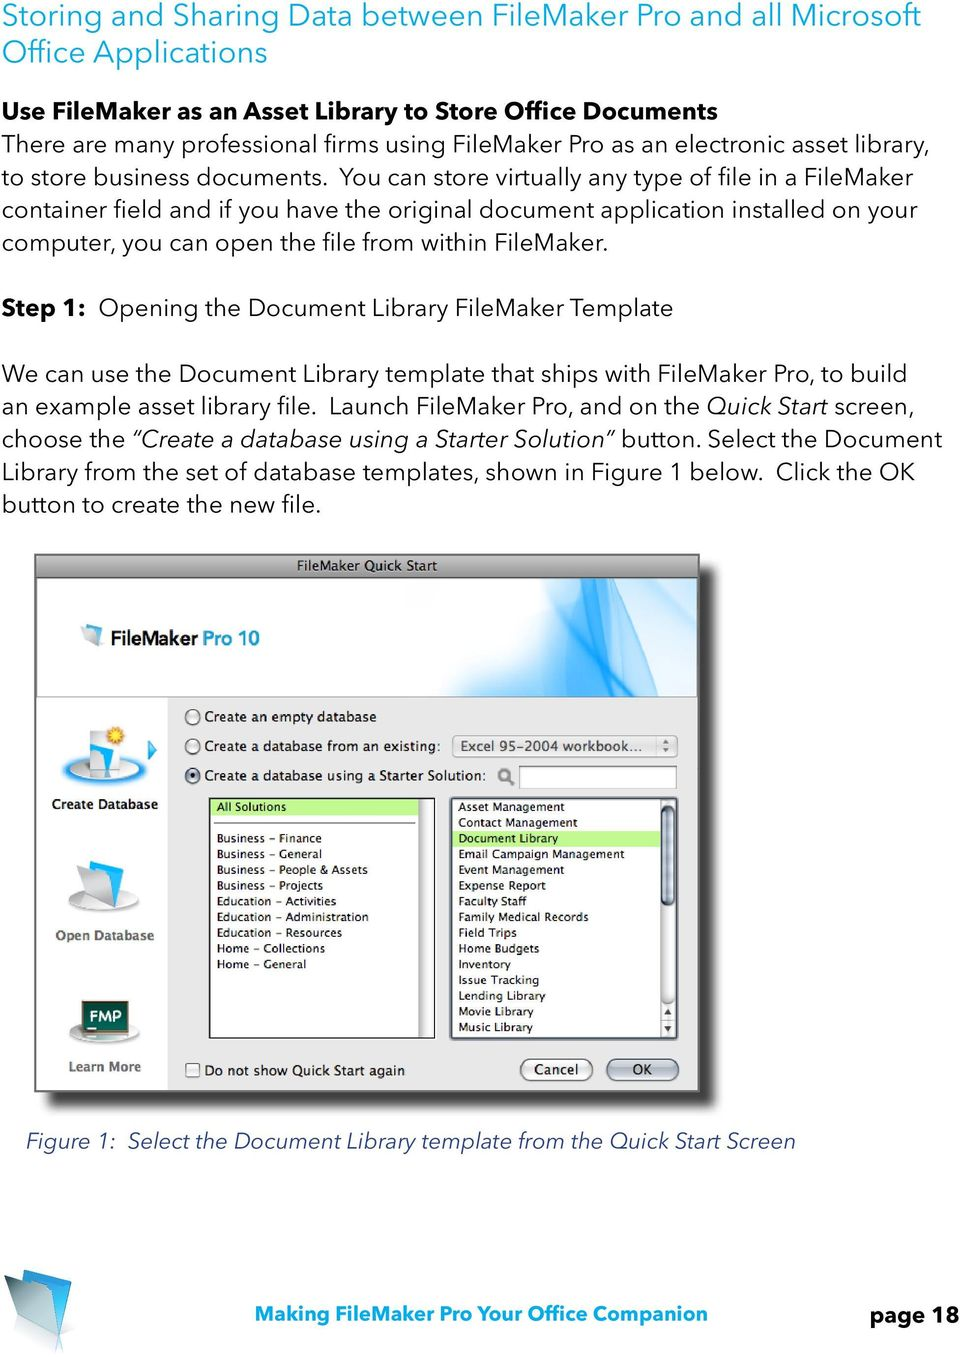 You can store virtually any type of file in a FileMaker container field and if you have the original document application installed on your computer, you can open the file from within FileMaker.